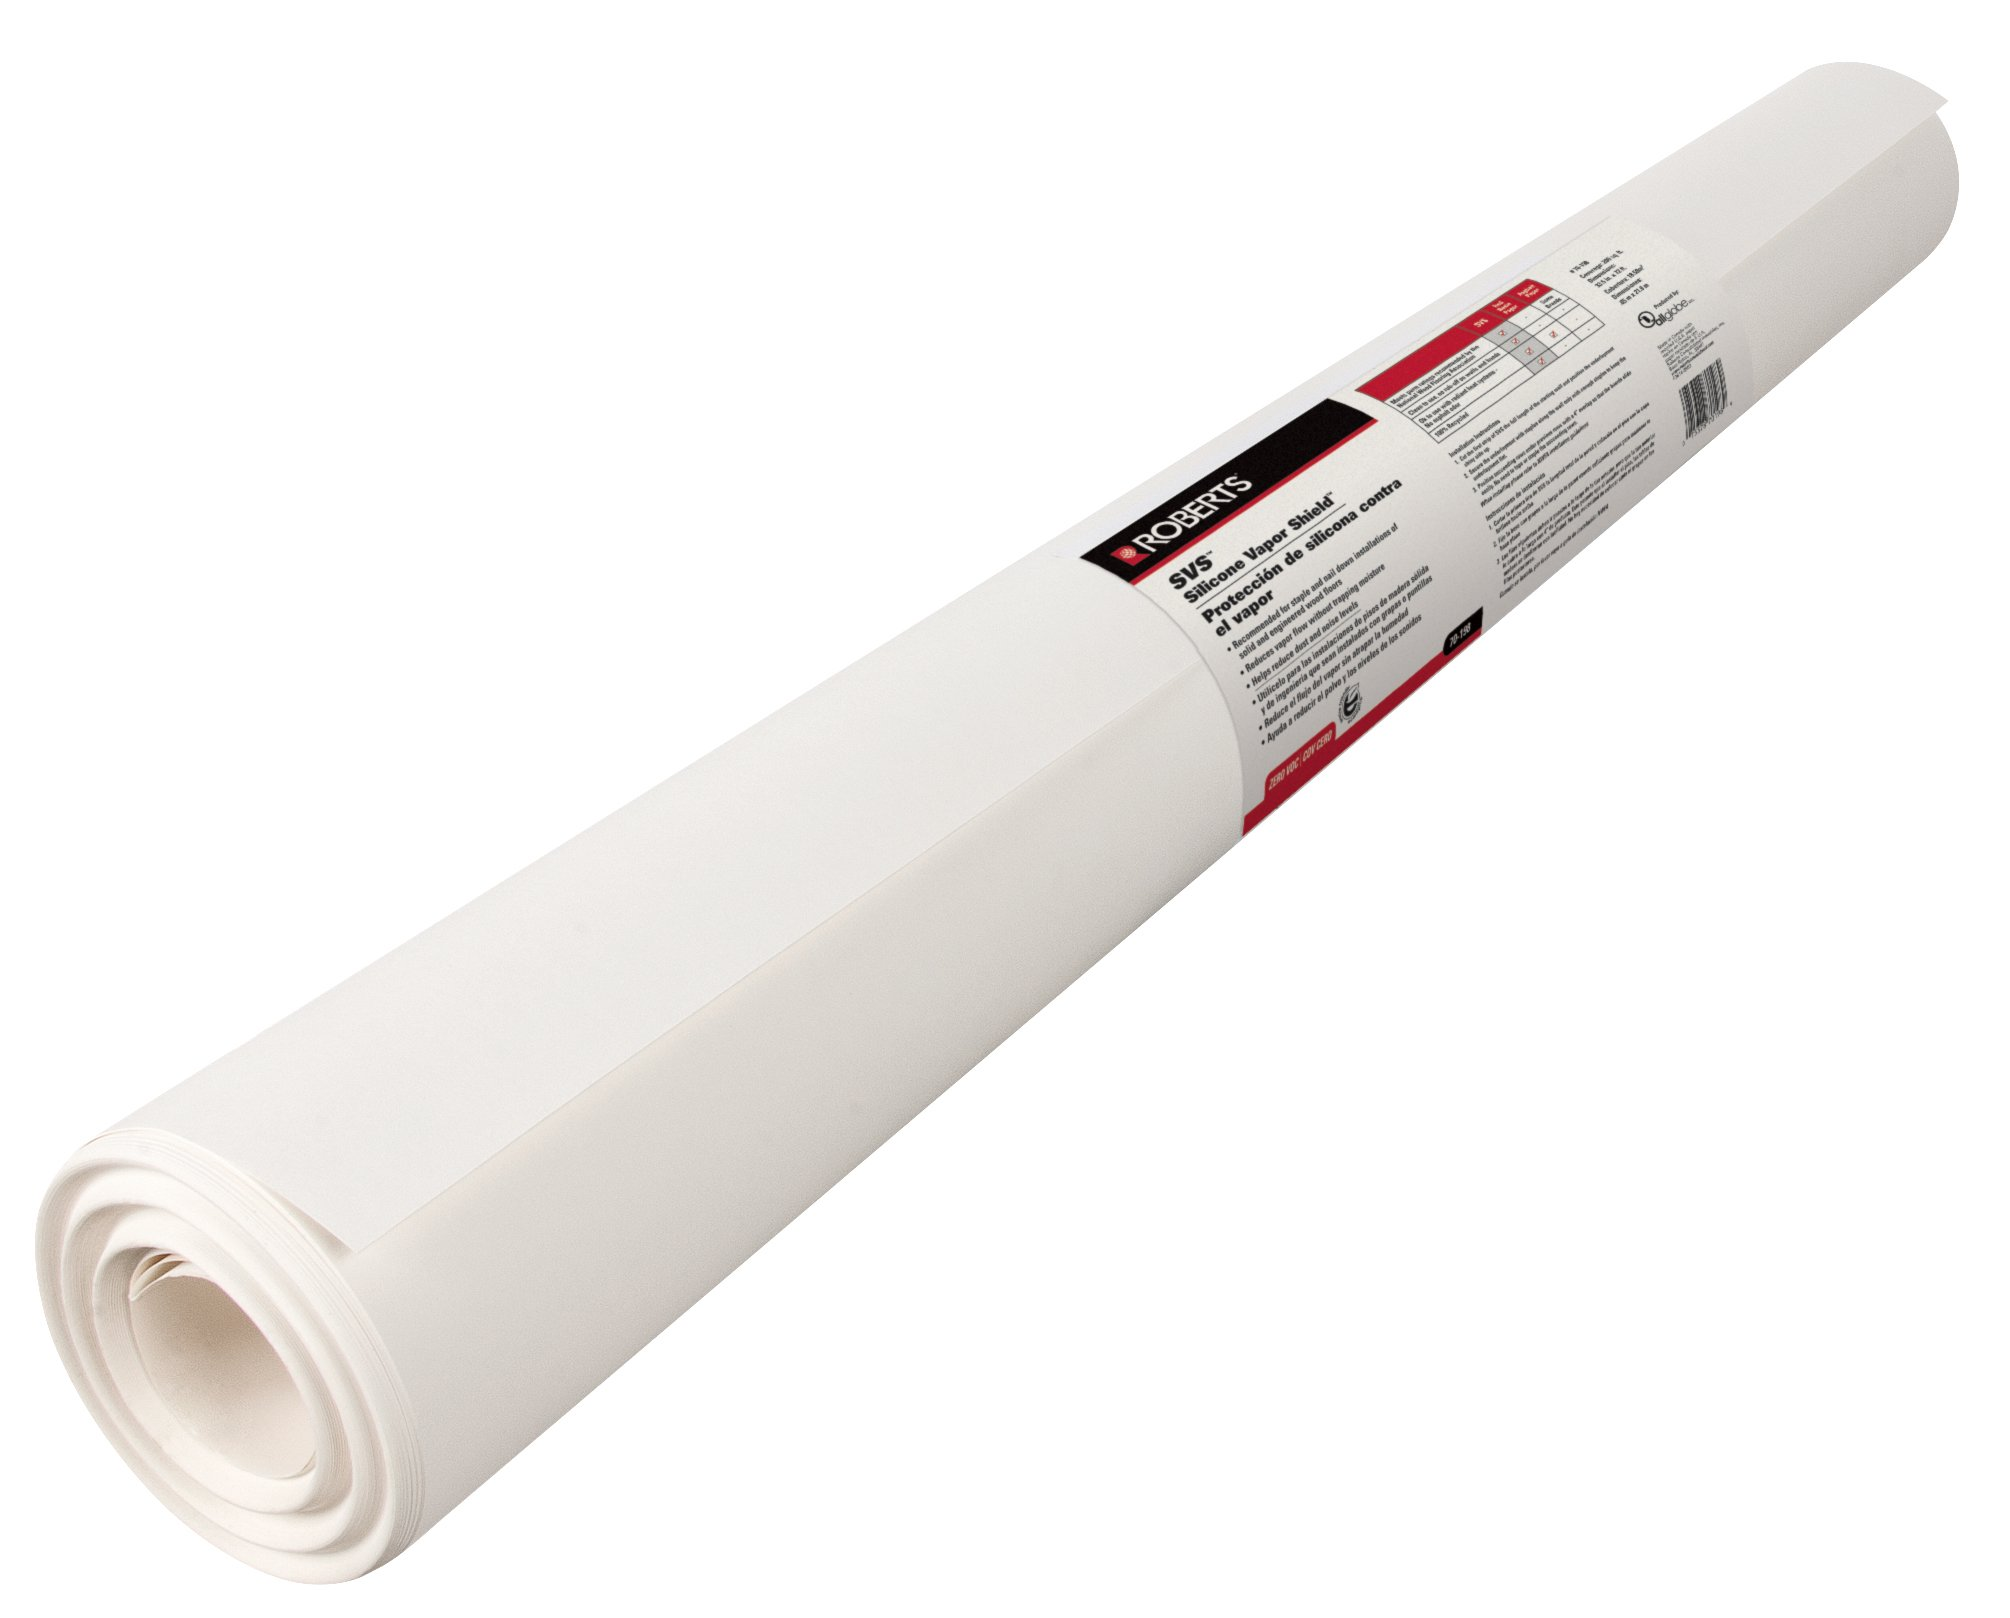 Roberts 70-198 Roll of Silicone Vapor Shield Underlayment for Wood Floors, 200 sq.-Feet